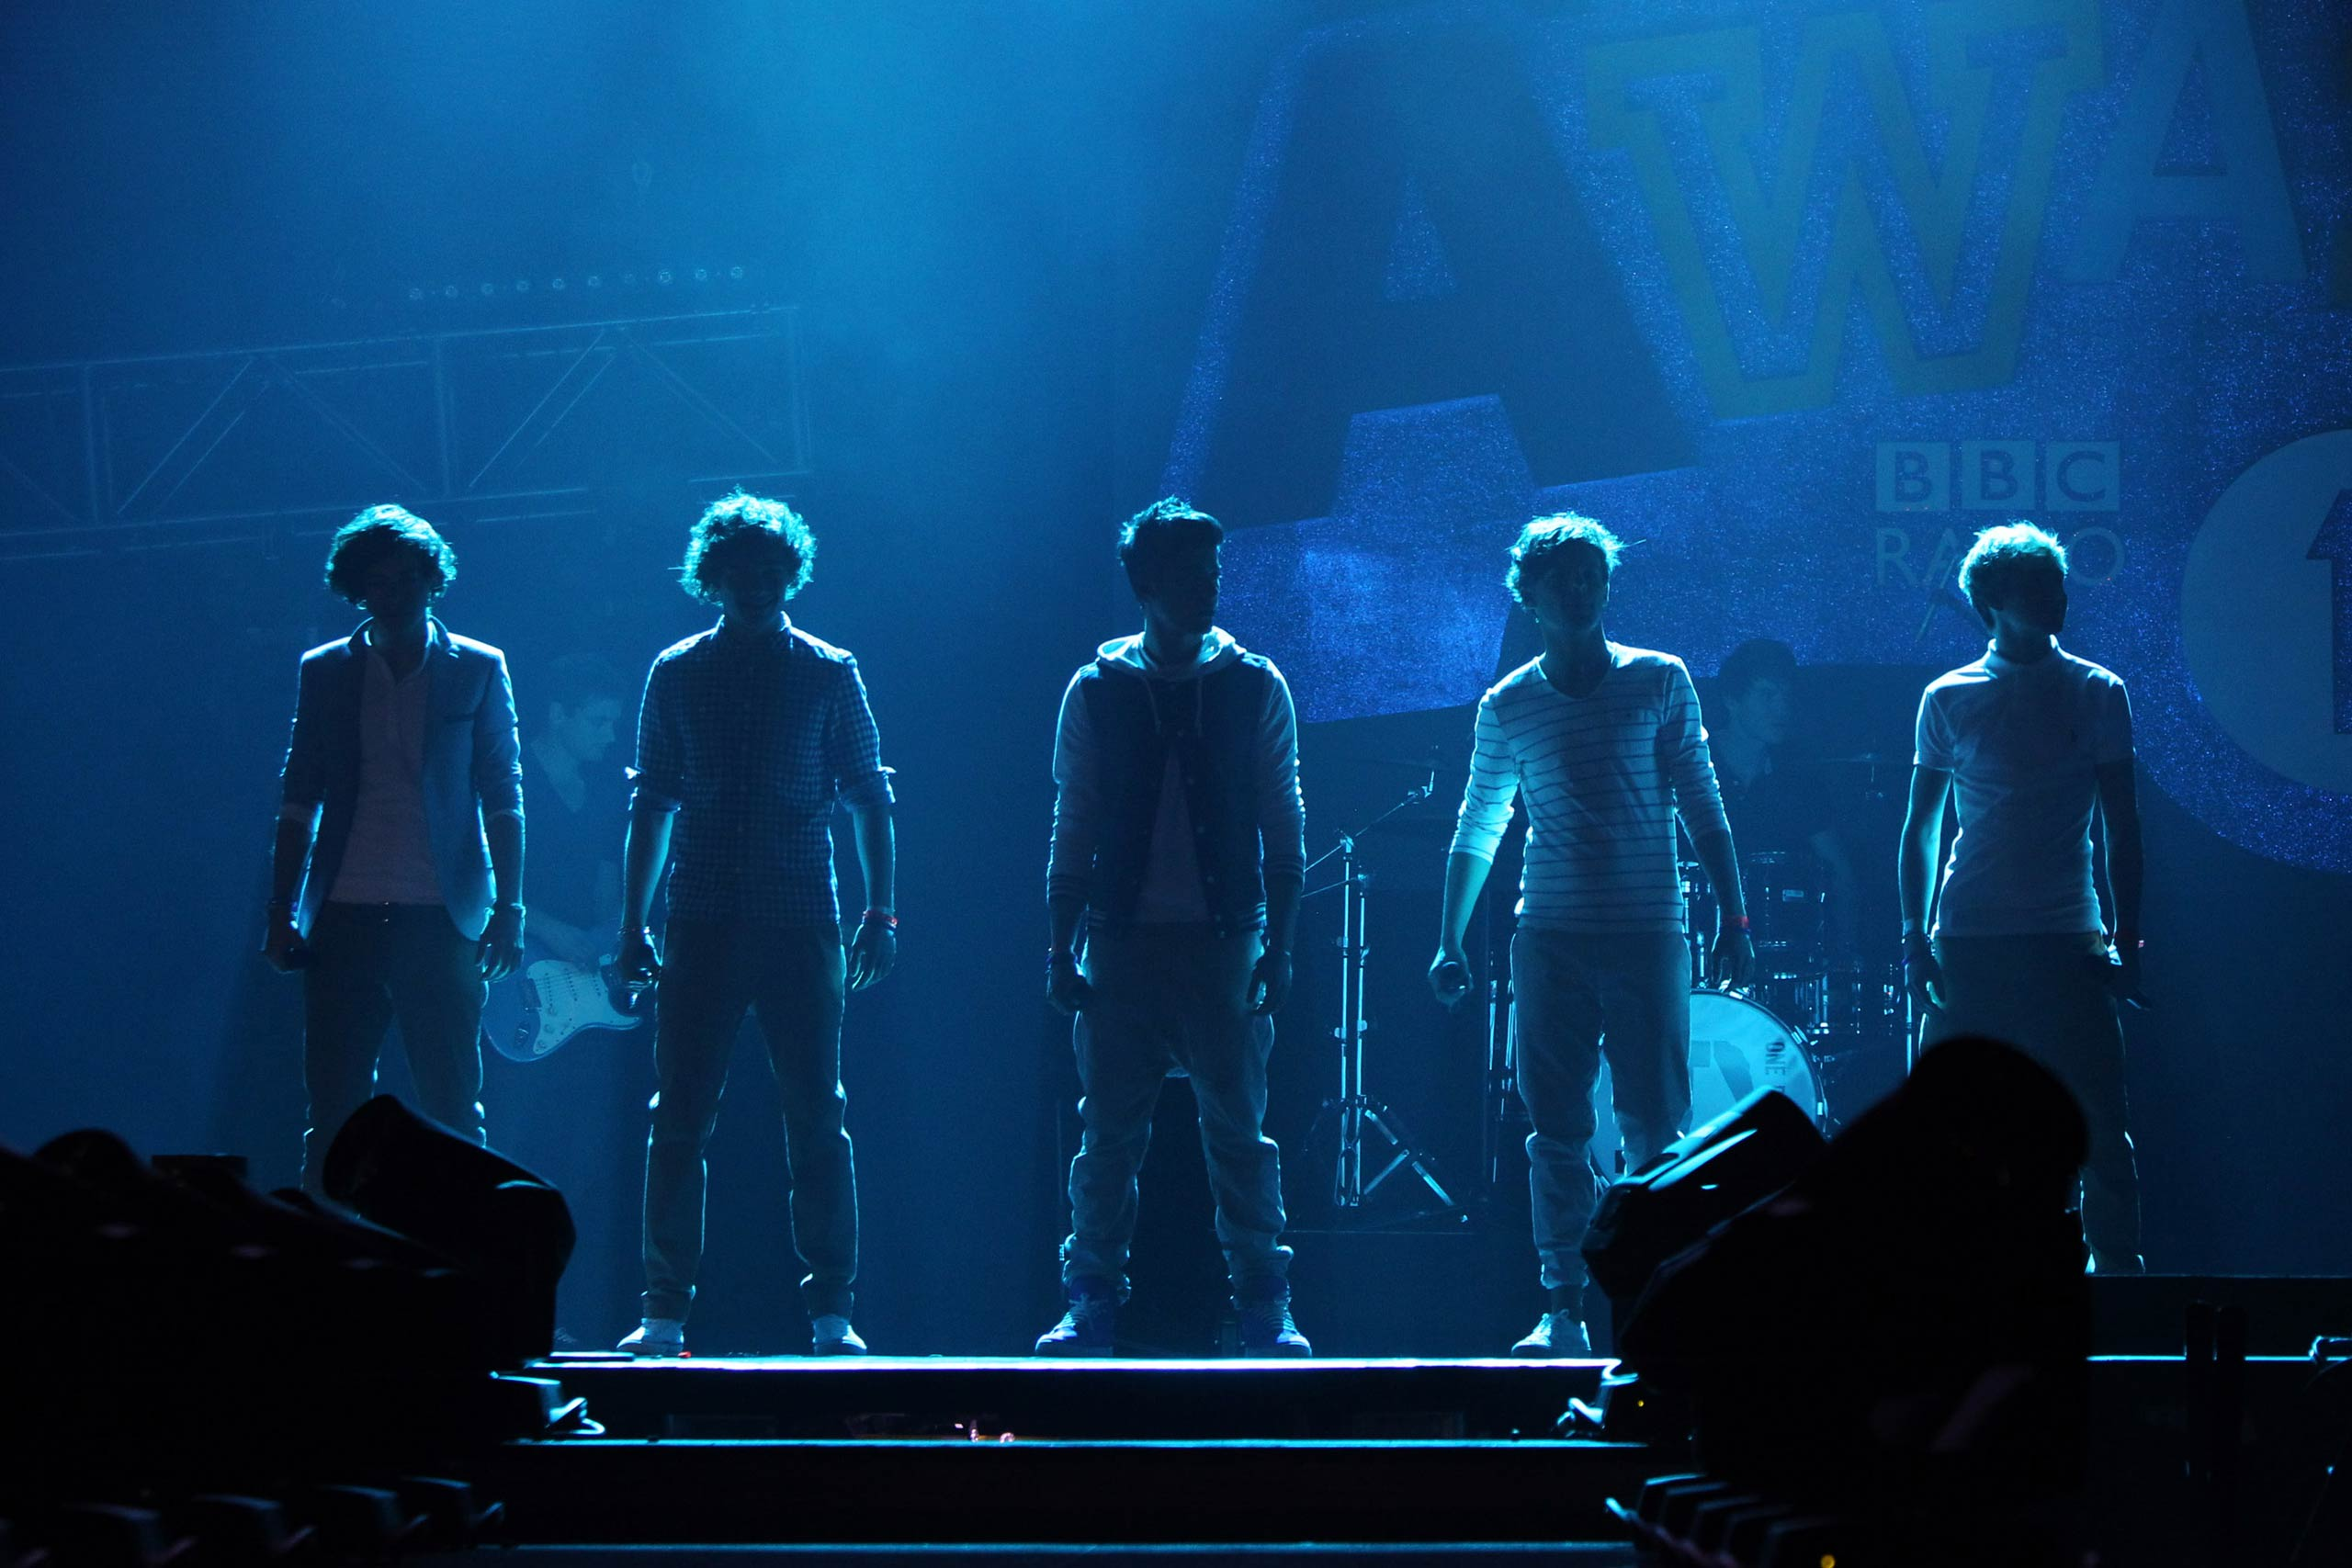 One Direction perform at the BBC Teen Awards at Wembley arena in London, England in 2011.